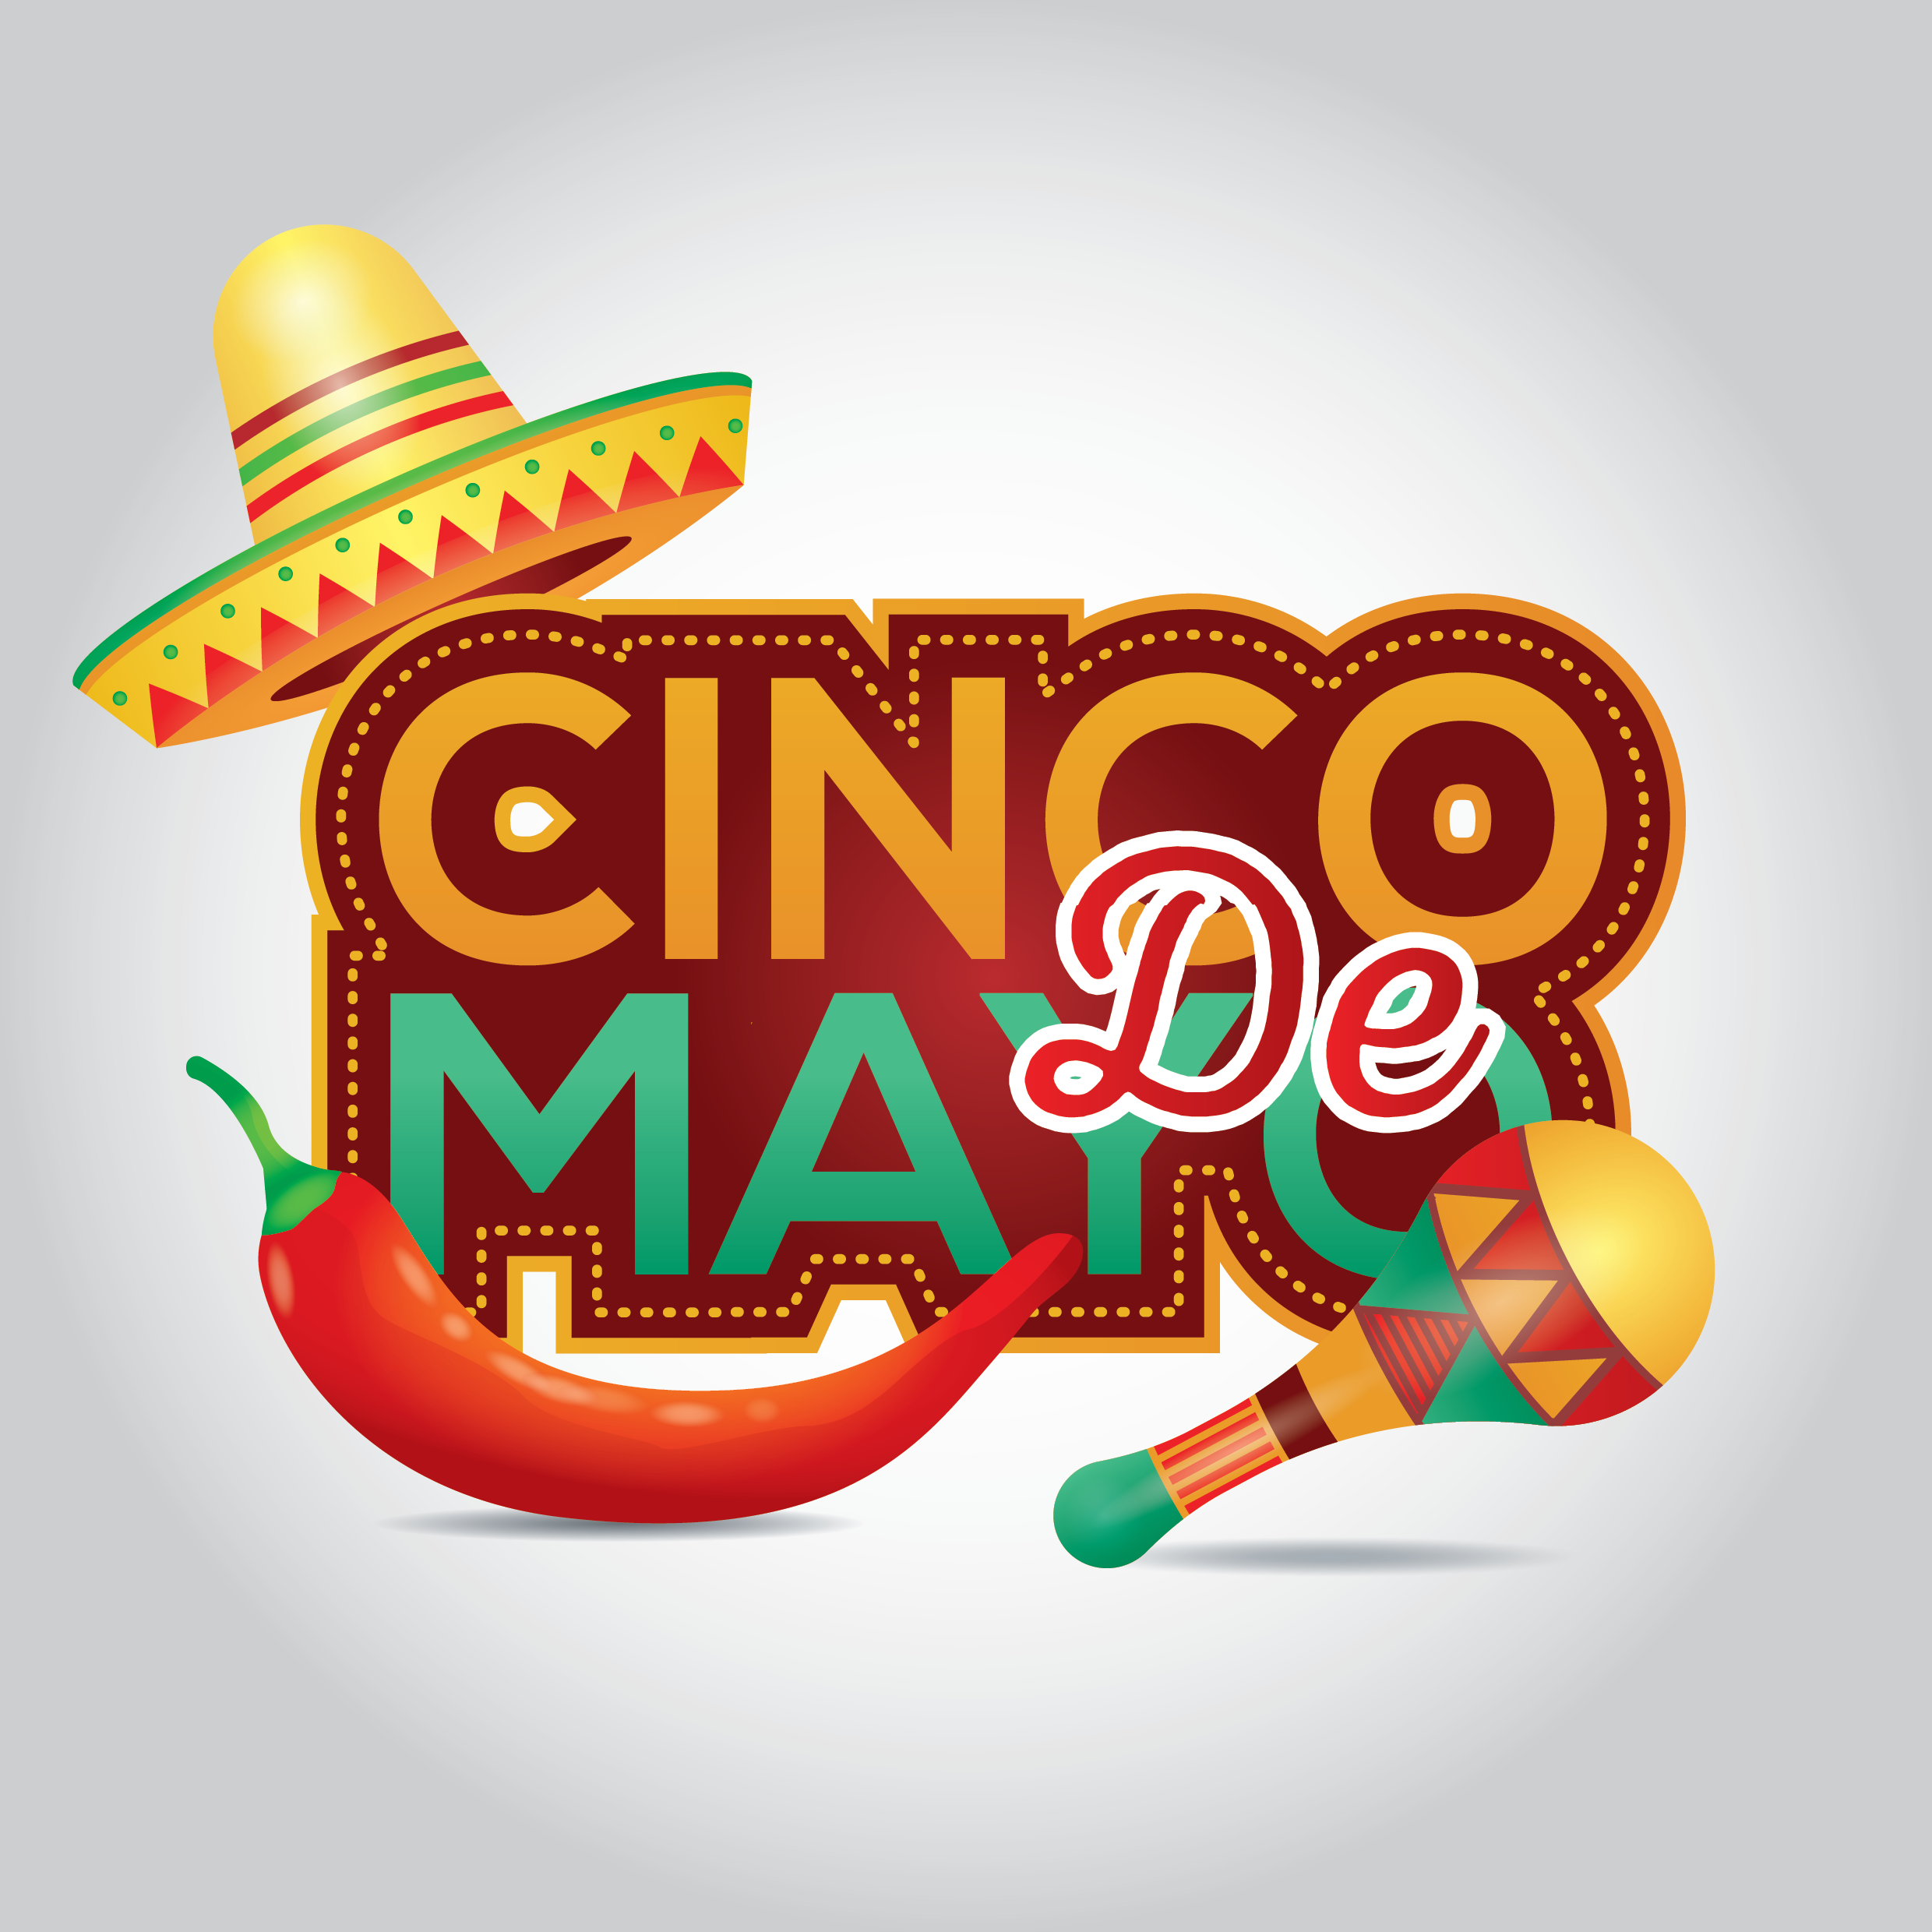 cinco de mayo graphic with maracas, a pepper, and a Mexican hat; ideas for celebrating cinco de mayo at home